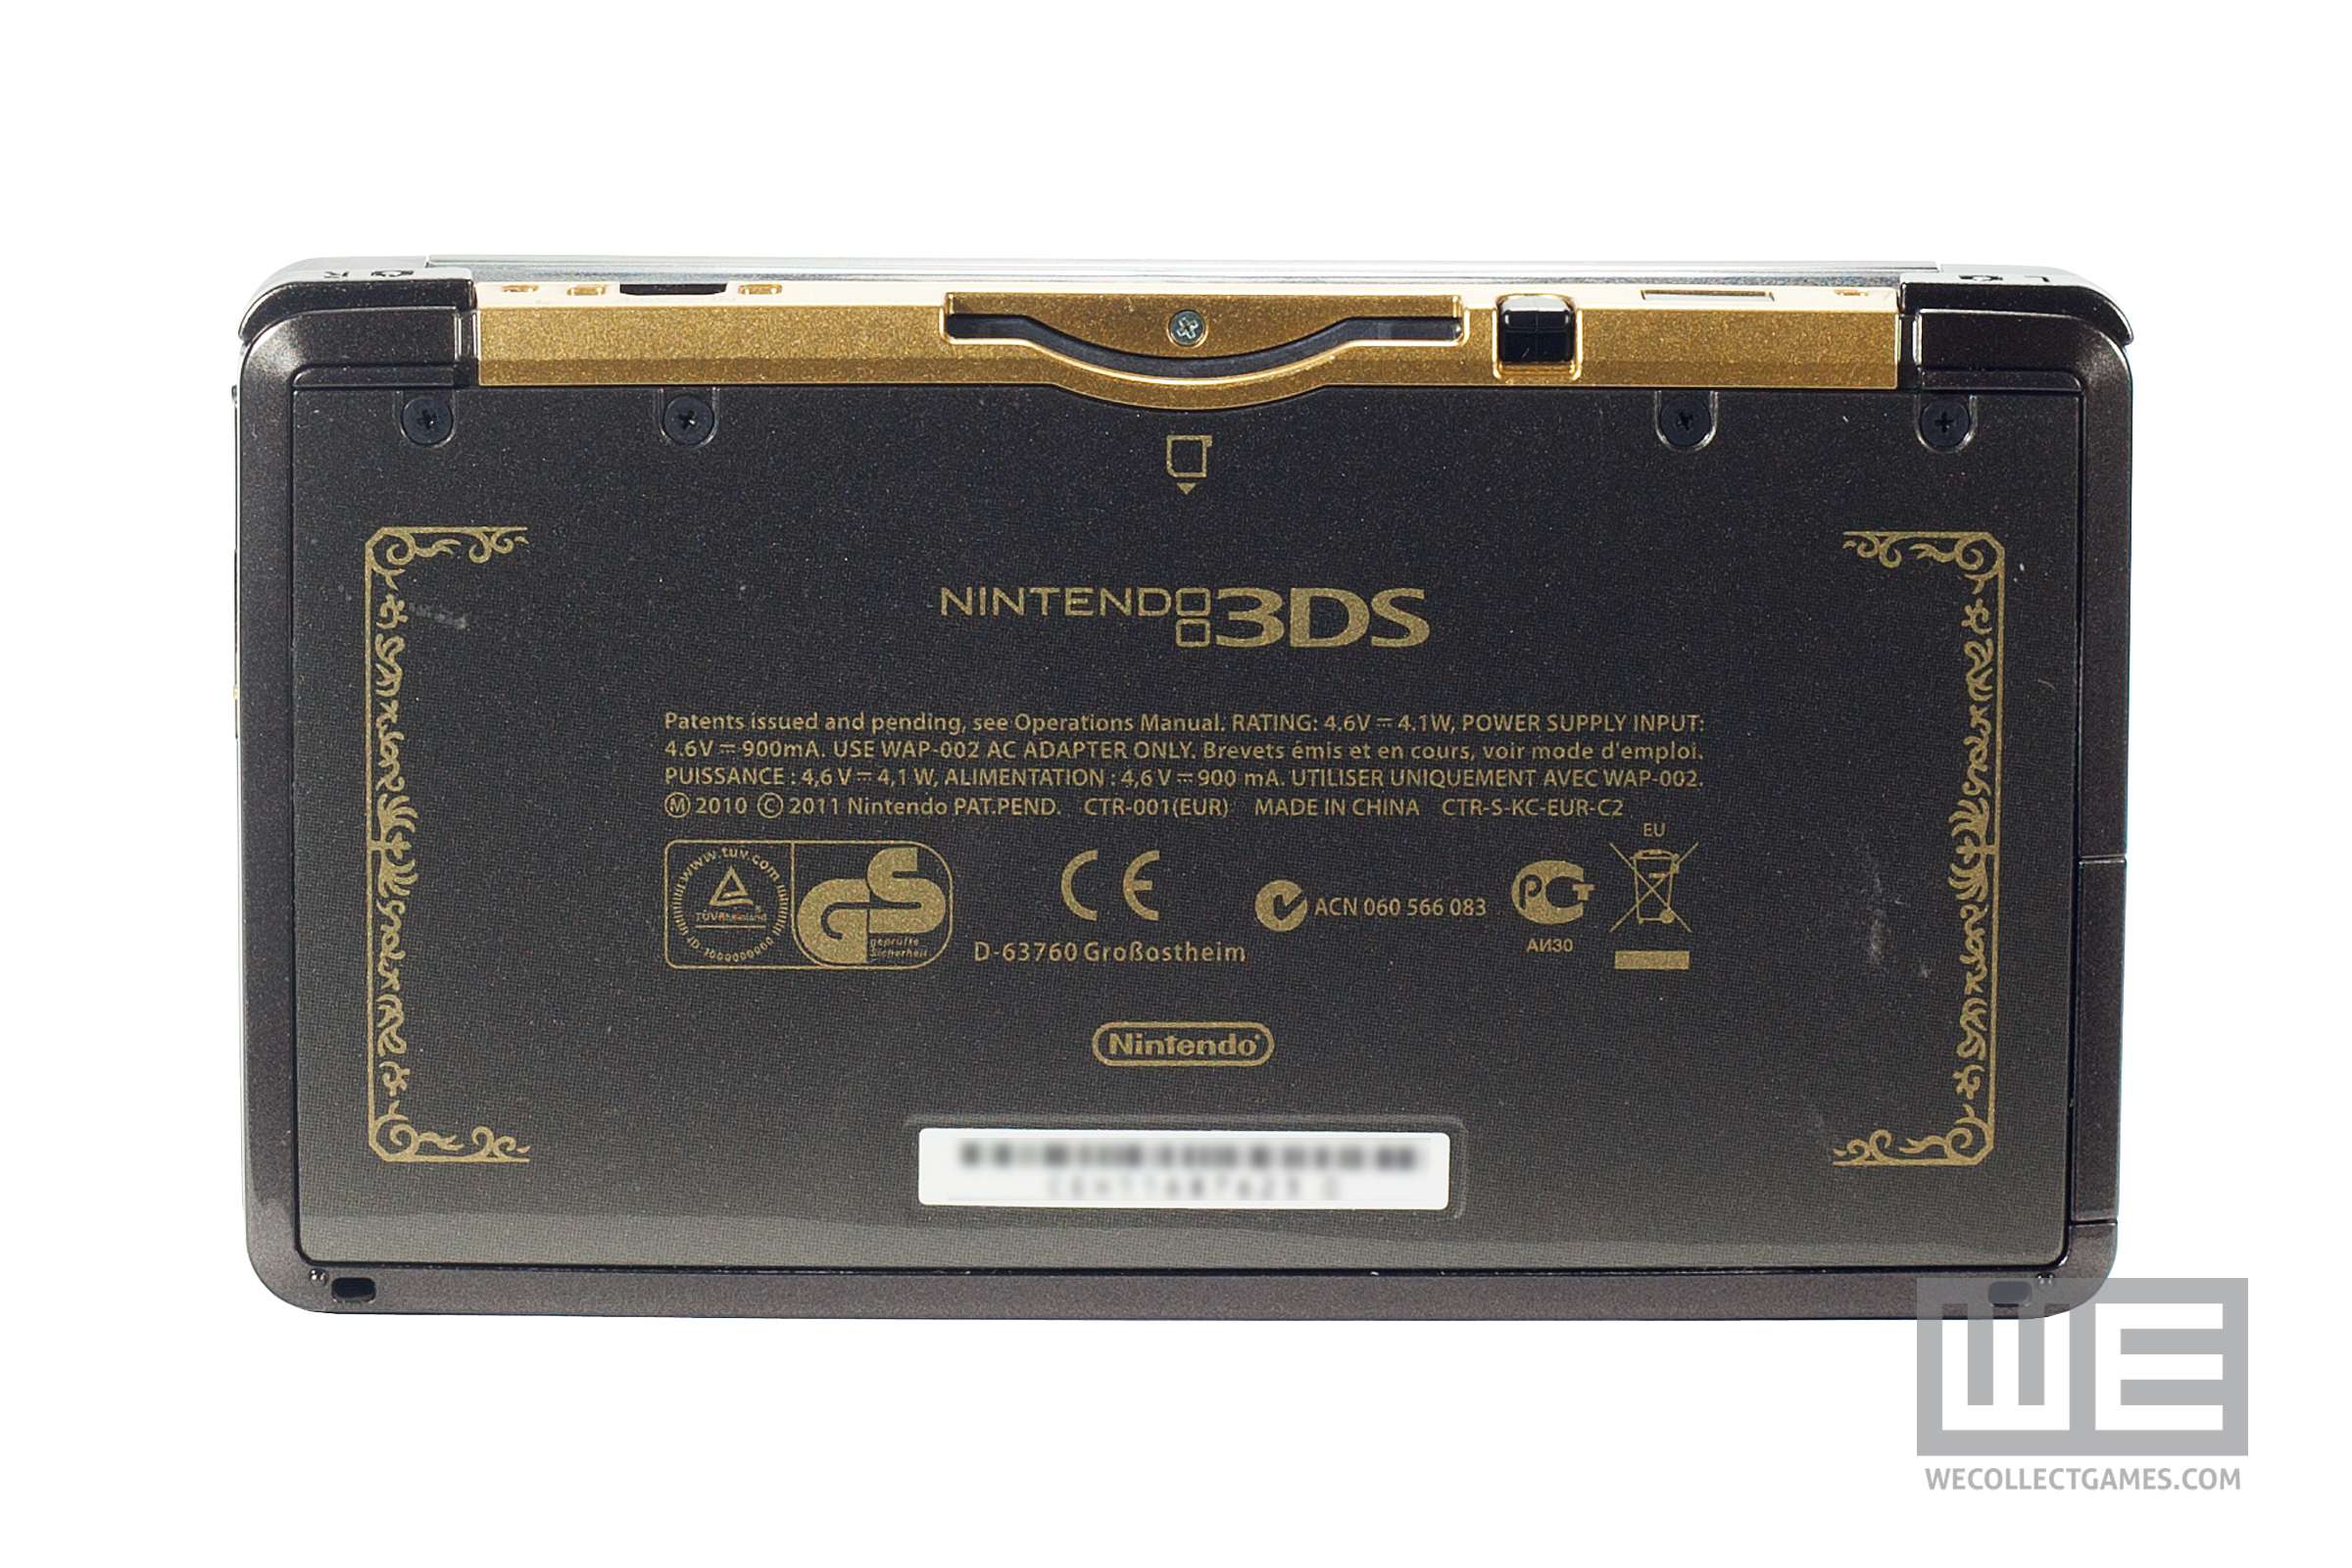 The legend of zelda 25th anniversary nintendo 3ds limited edition console we collect games - Ocarina of time 3ds console ...